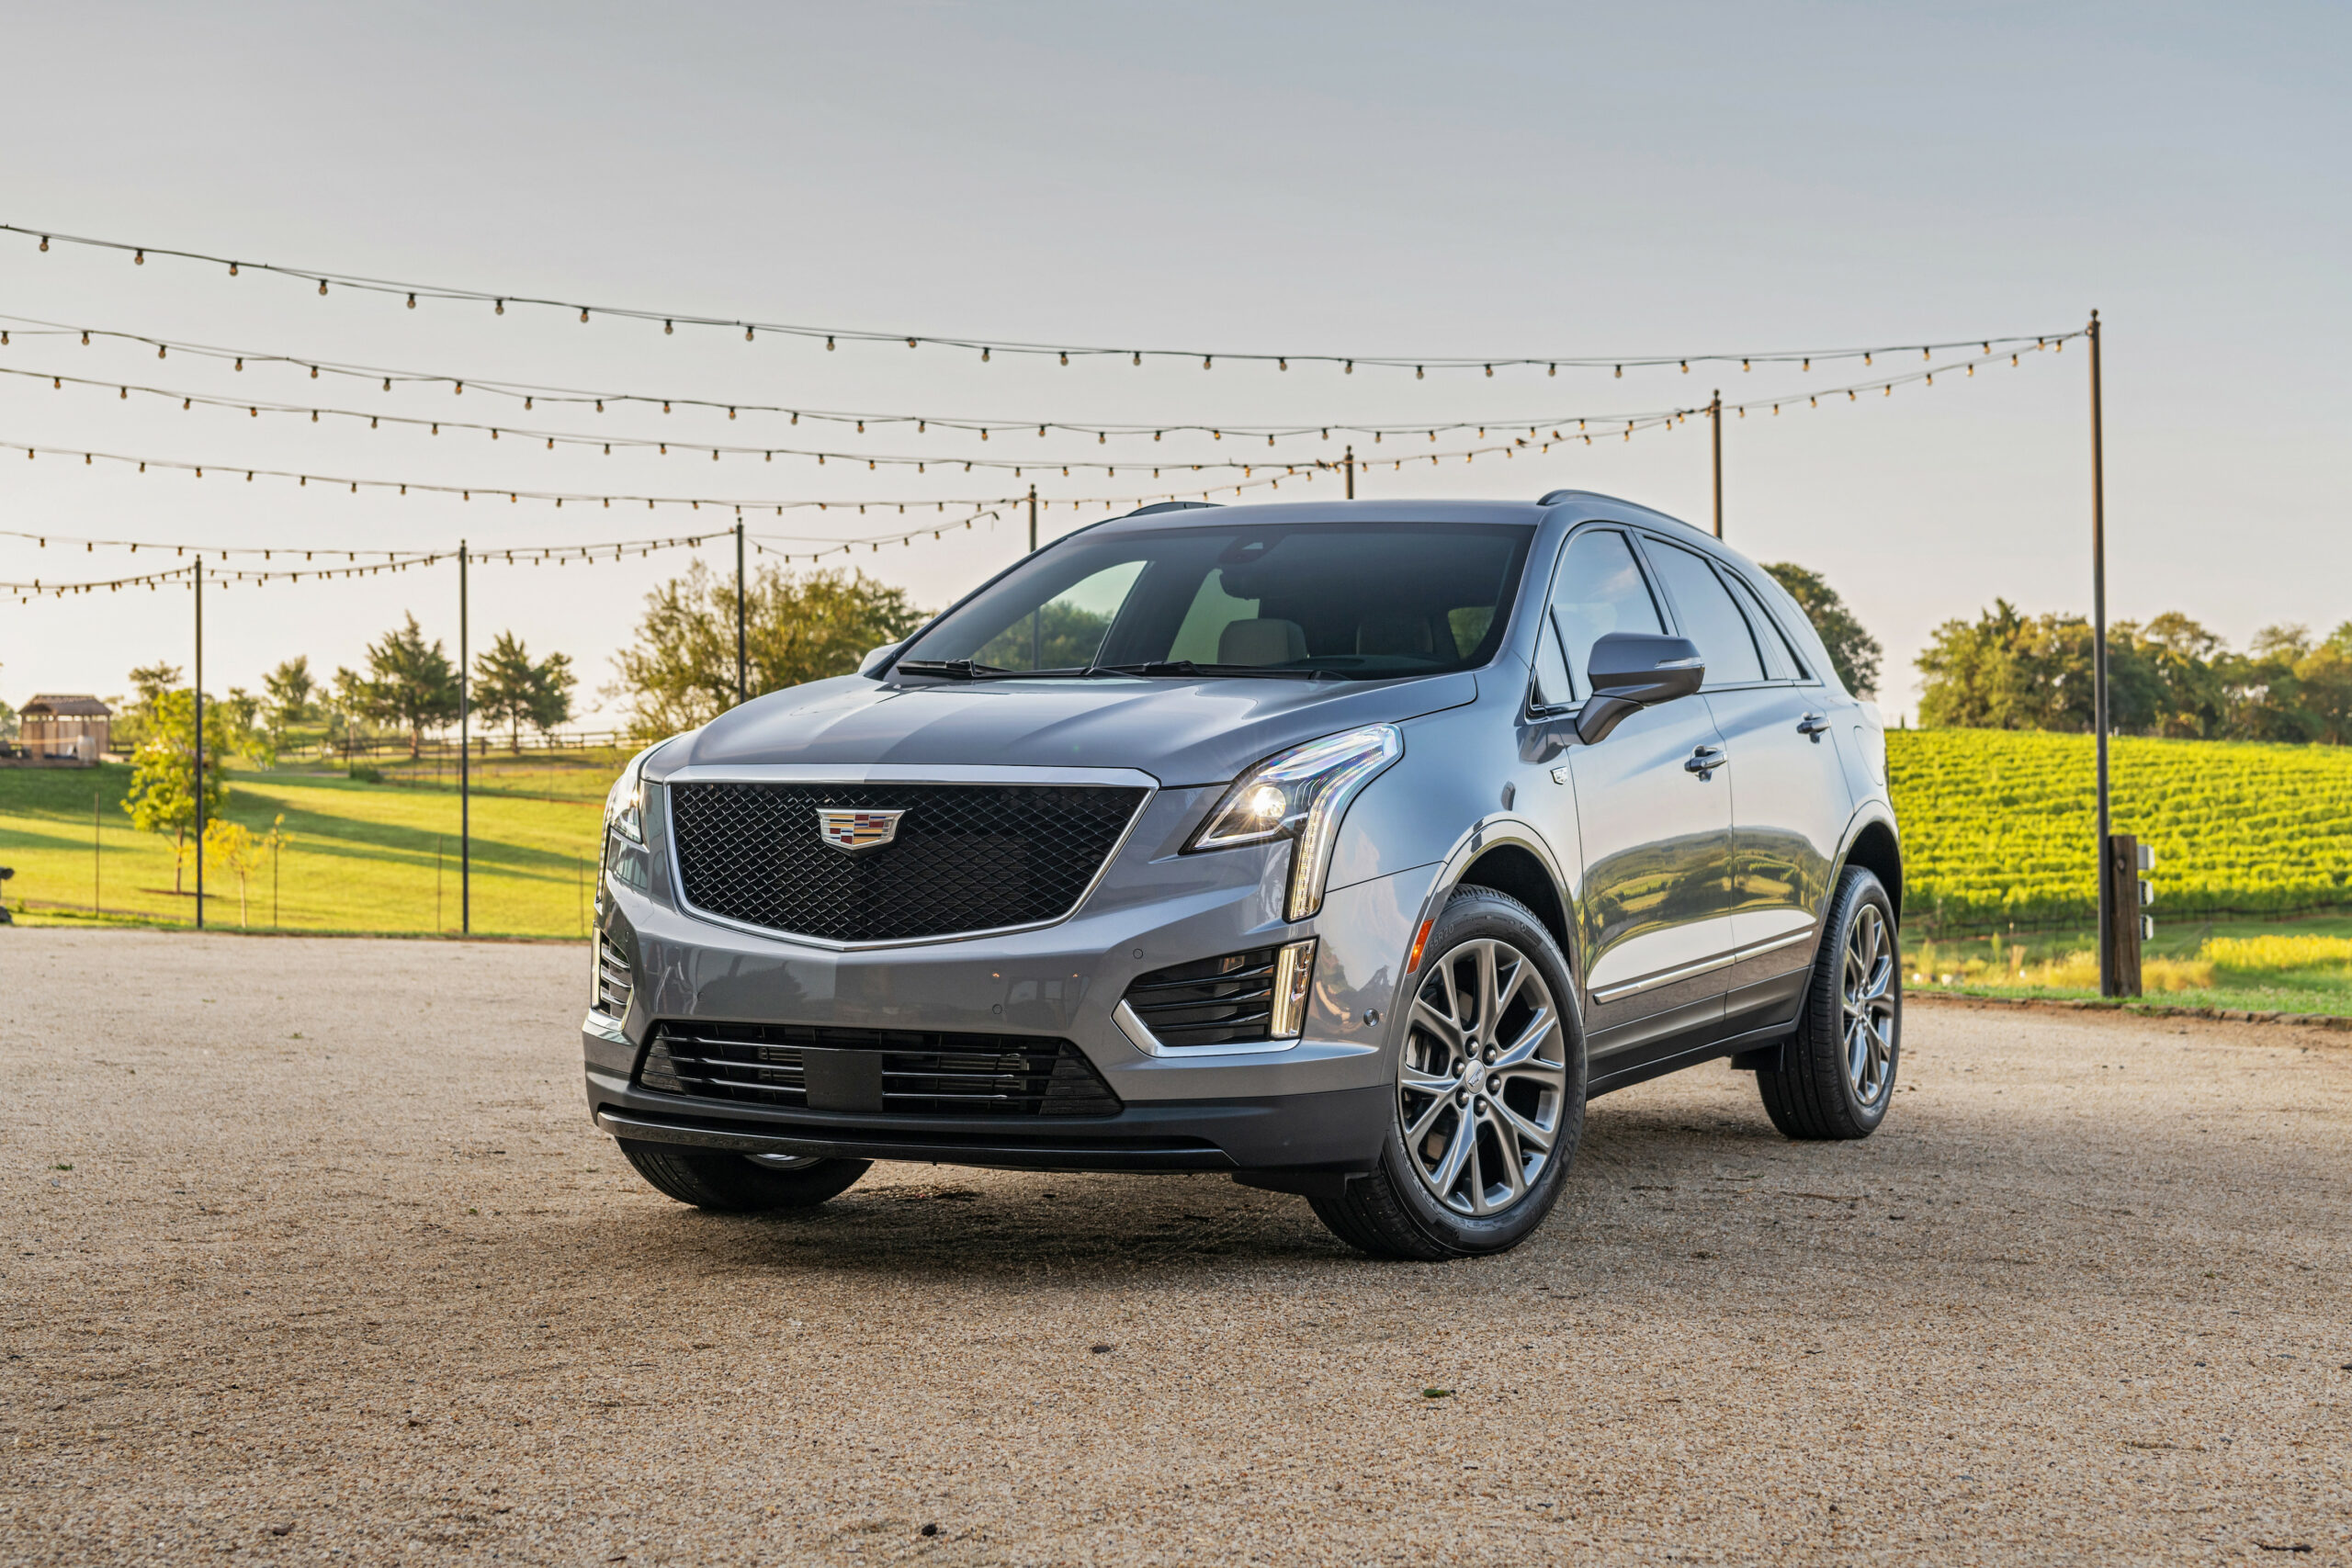 Wallpaper When Will The 2022 Cadillac Xt5 Be Available